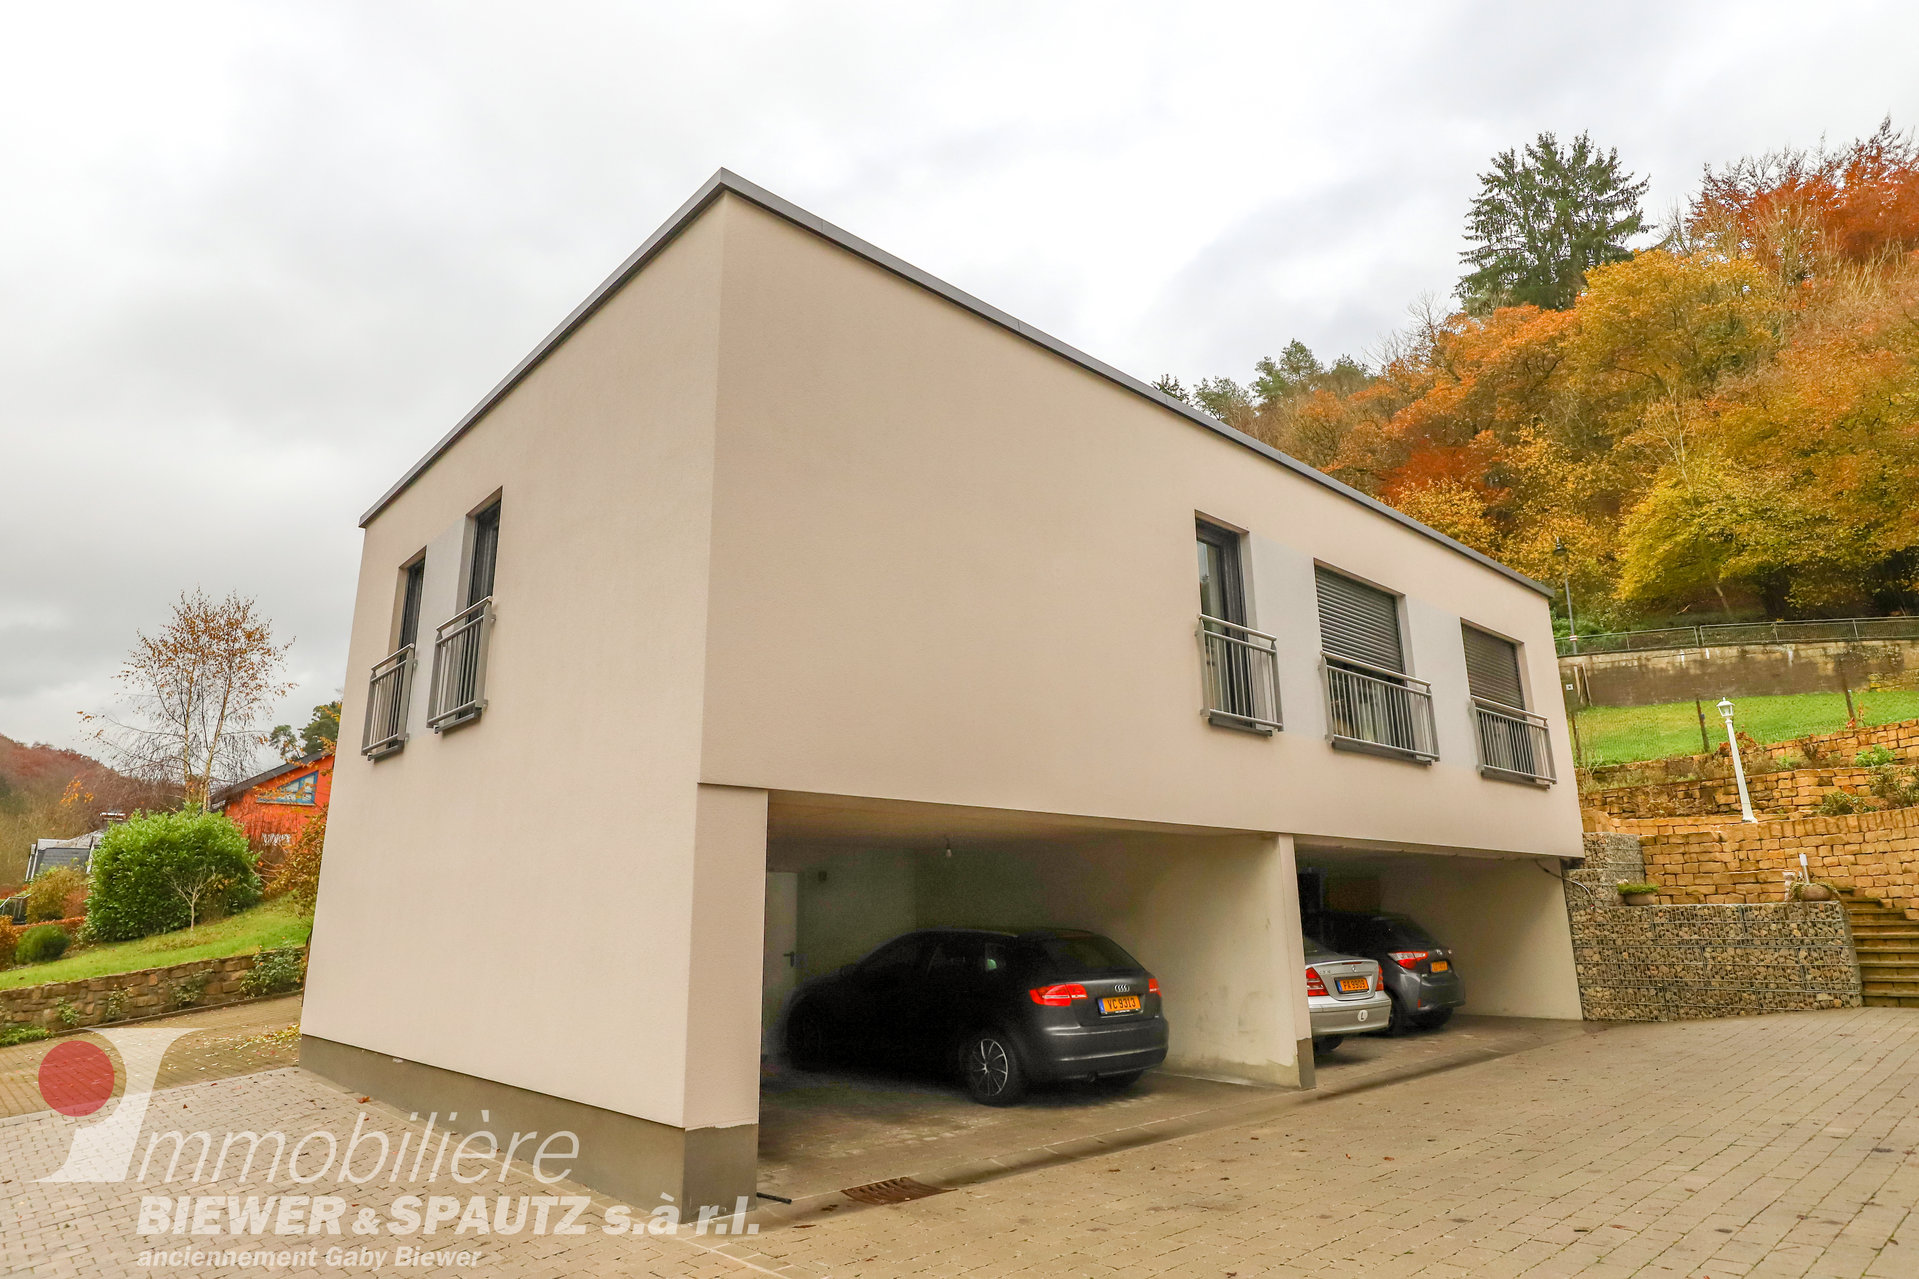 FOR RENT - new apartment with 2 bedrooms in Blumenthal